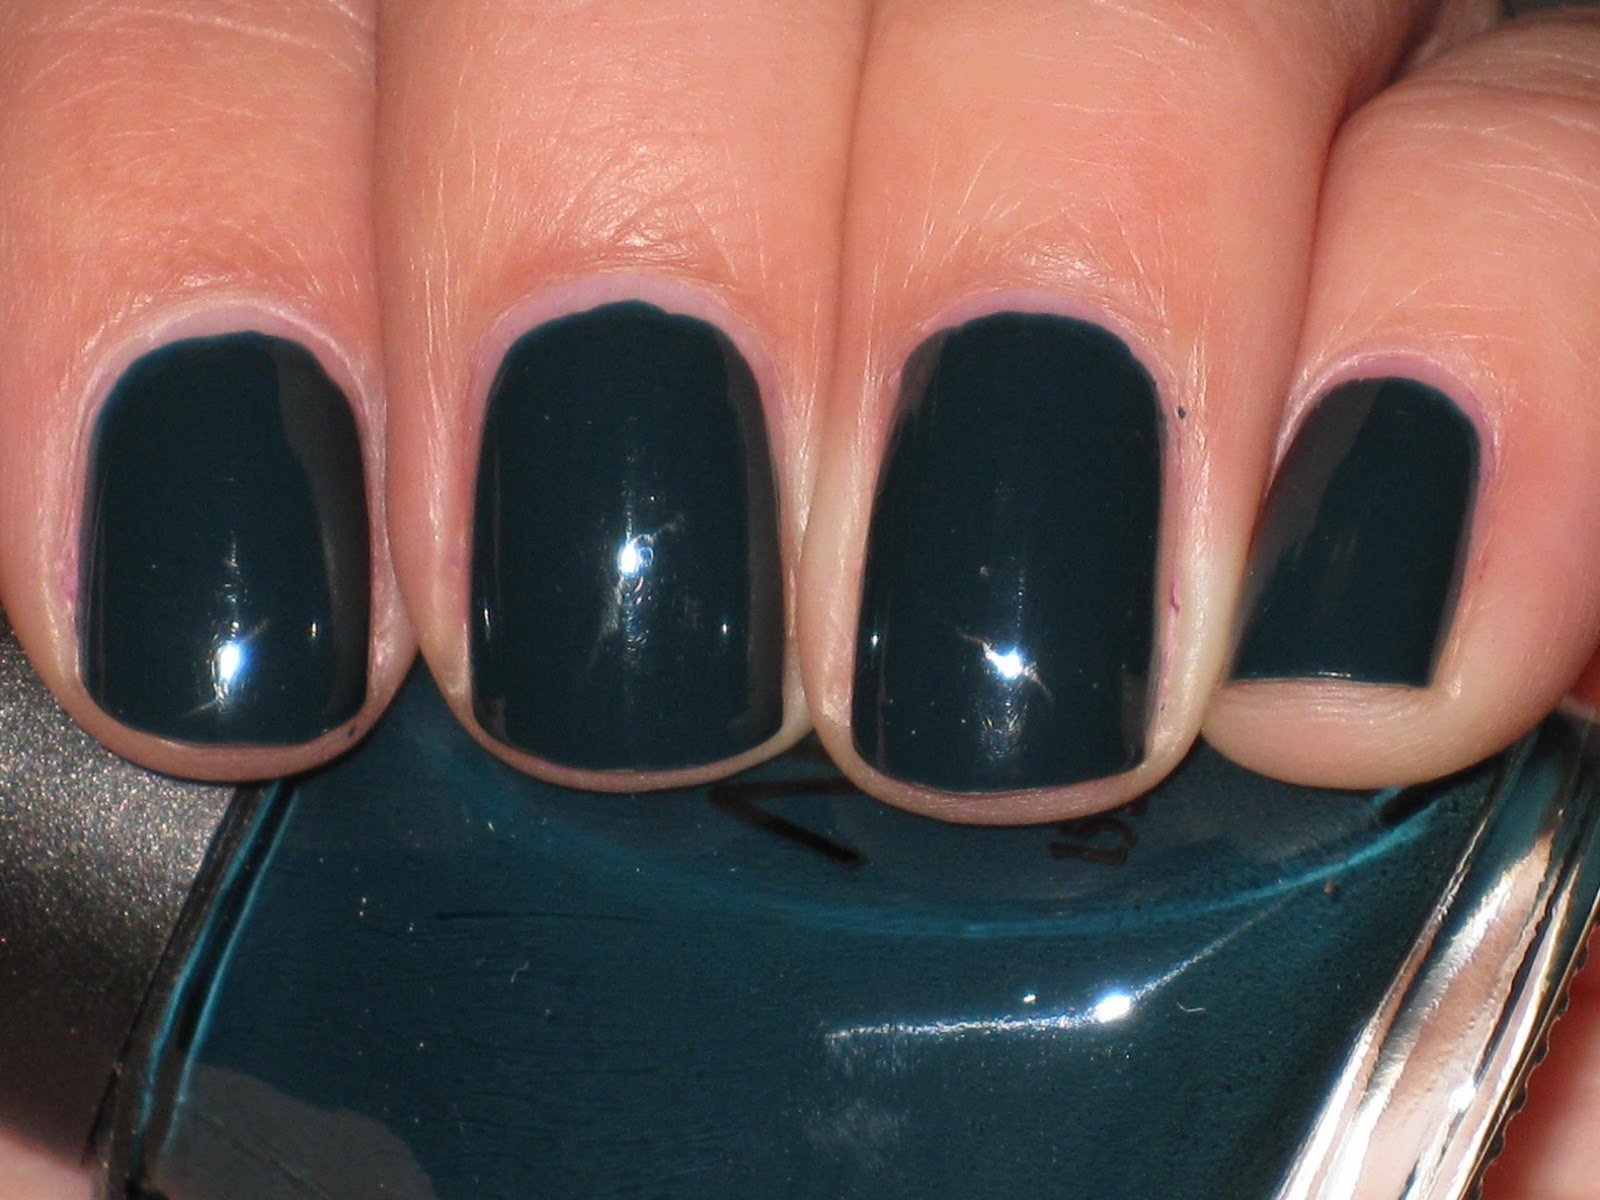 Opi Describes This Shade As Deep Emerald But I Would Say It S More Like A Dark Teal Can Read Green Or Blue Depending On The Light